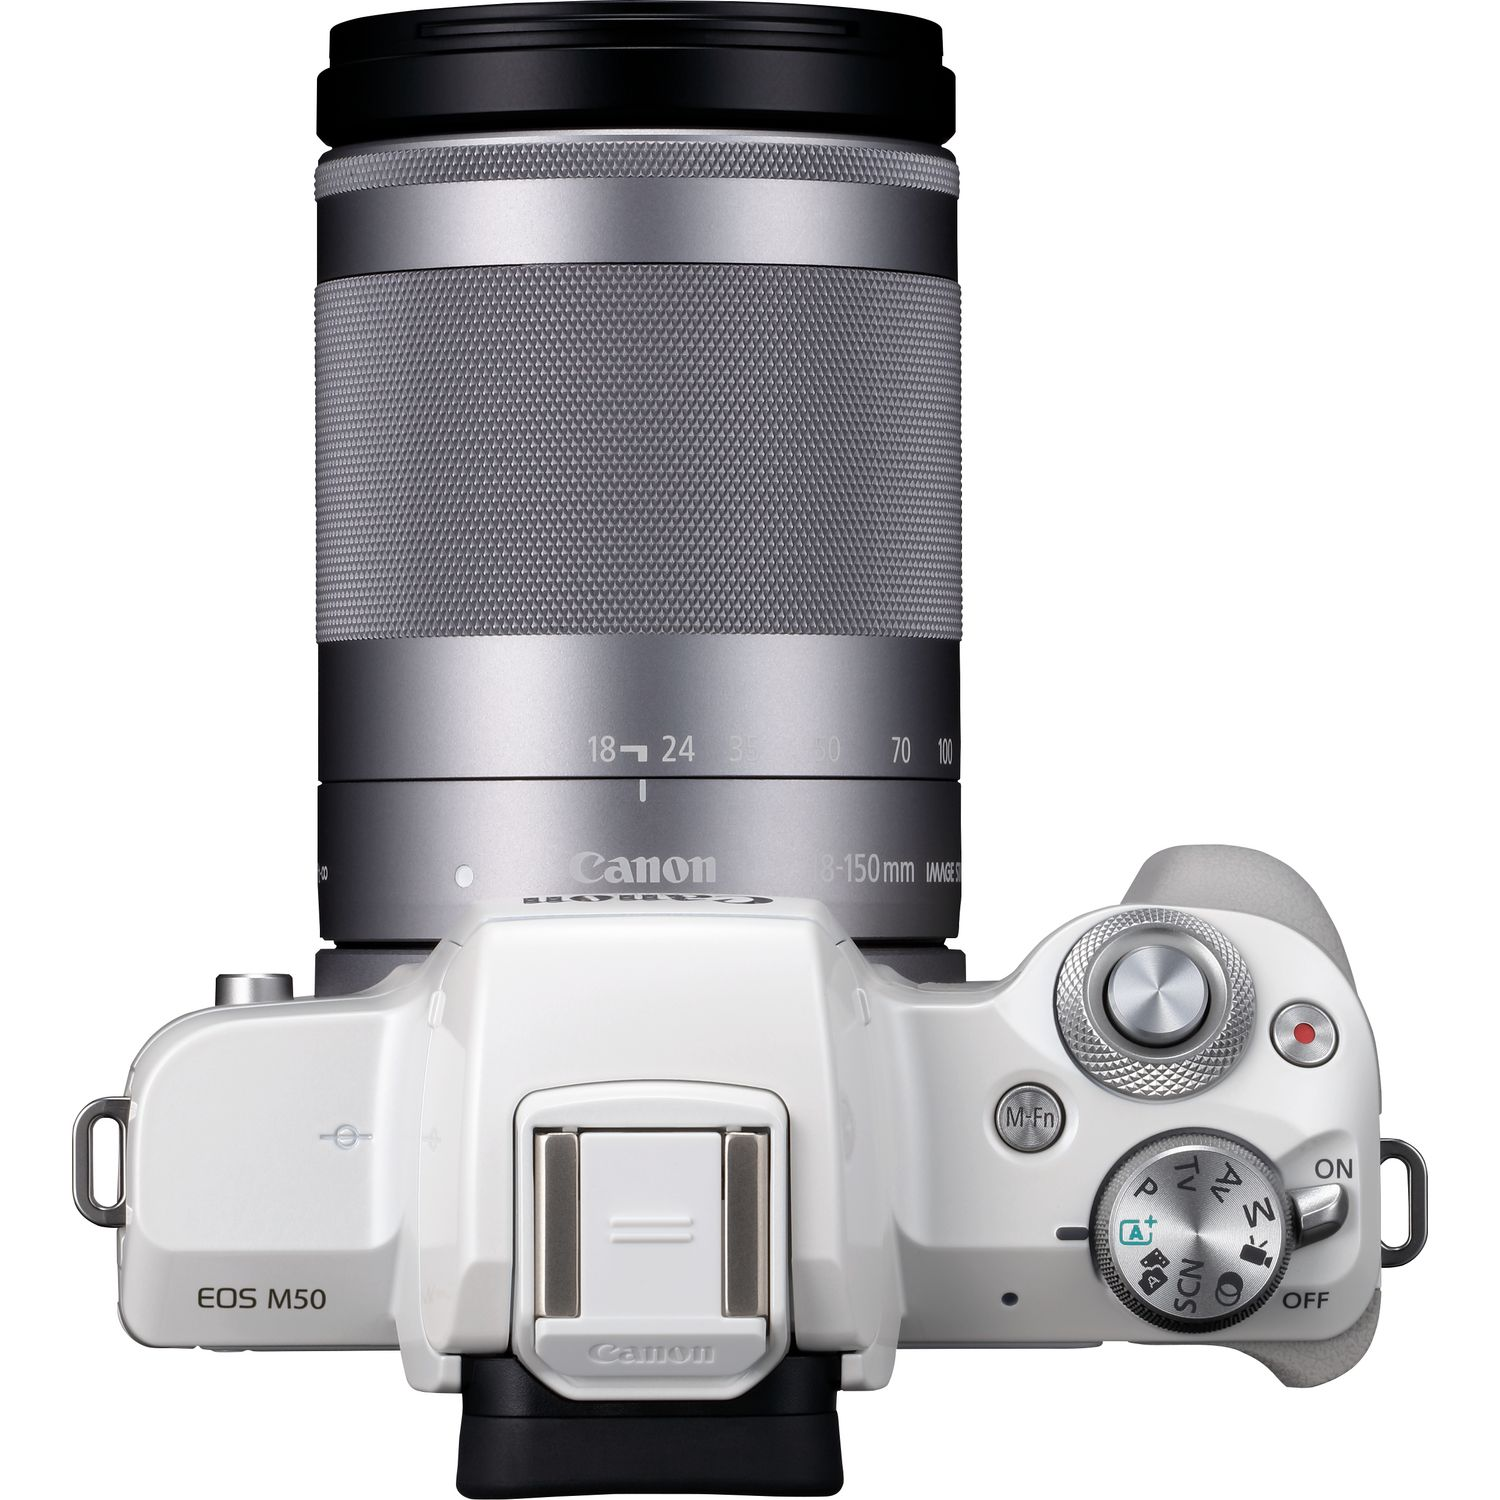 Buy Canon EOS M50 White + EF-M 18-150mm IS STM Silver in Wi